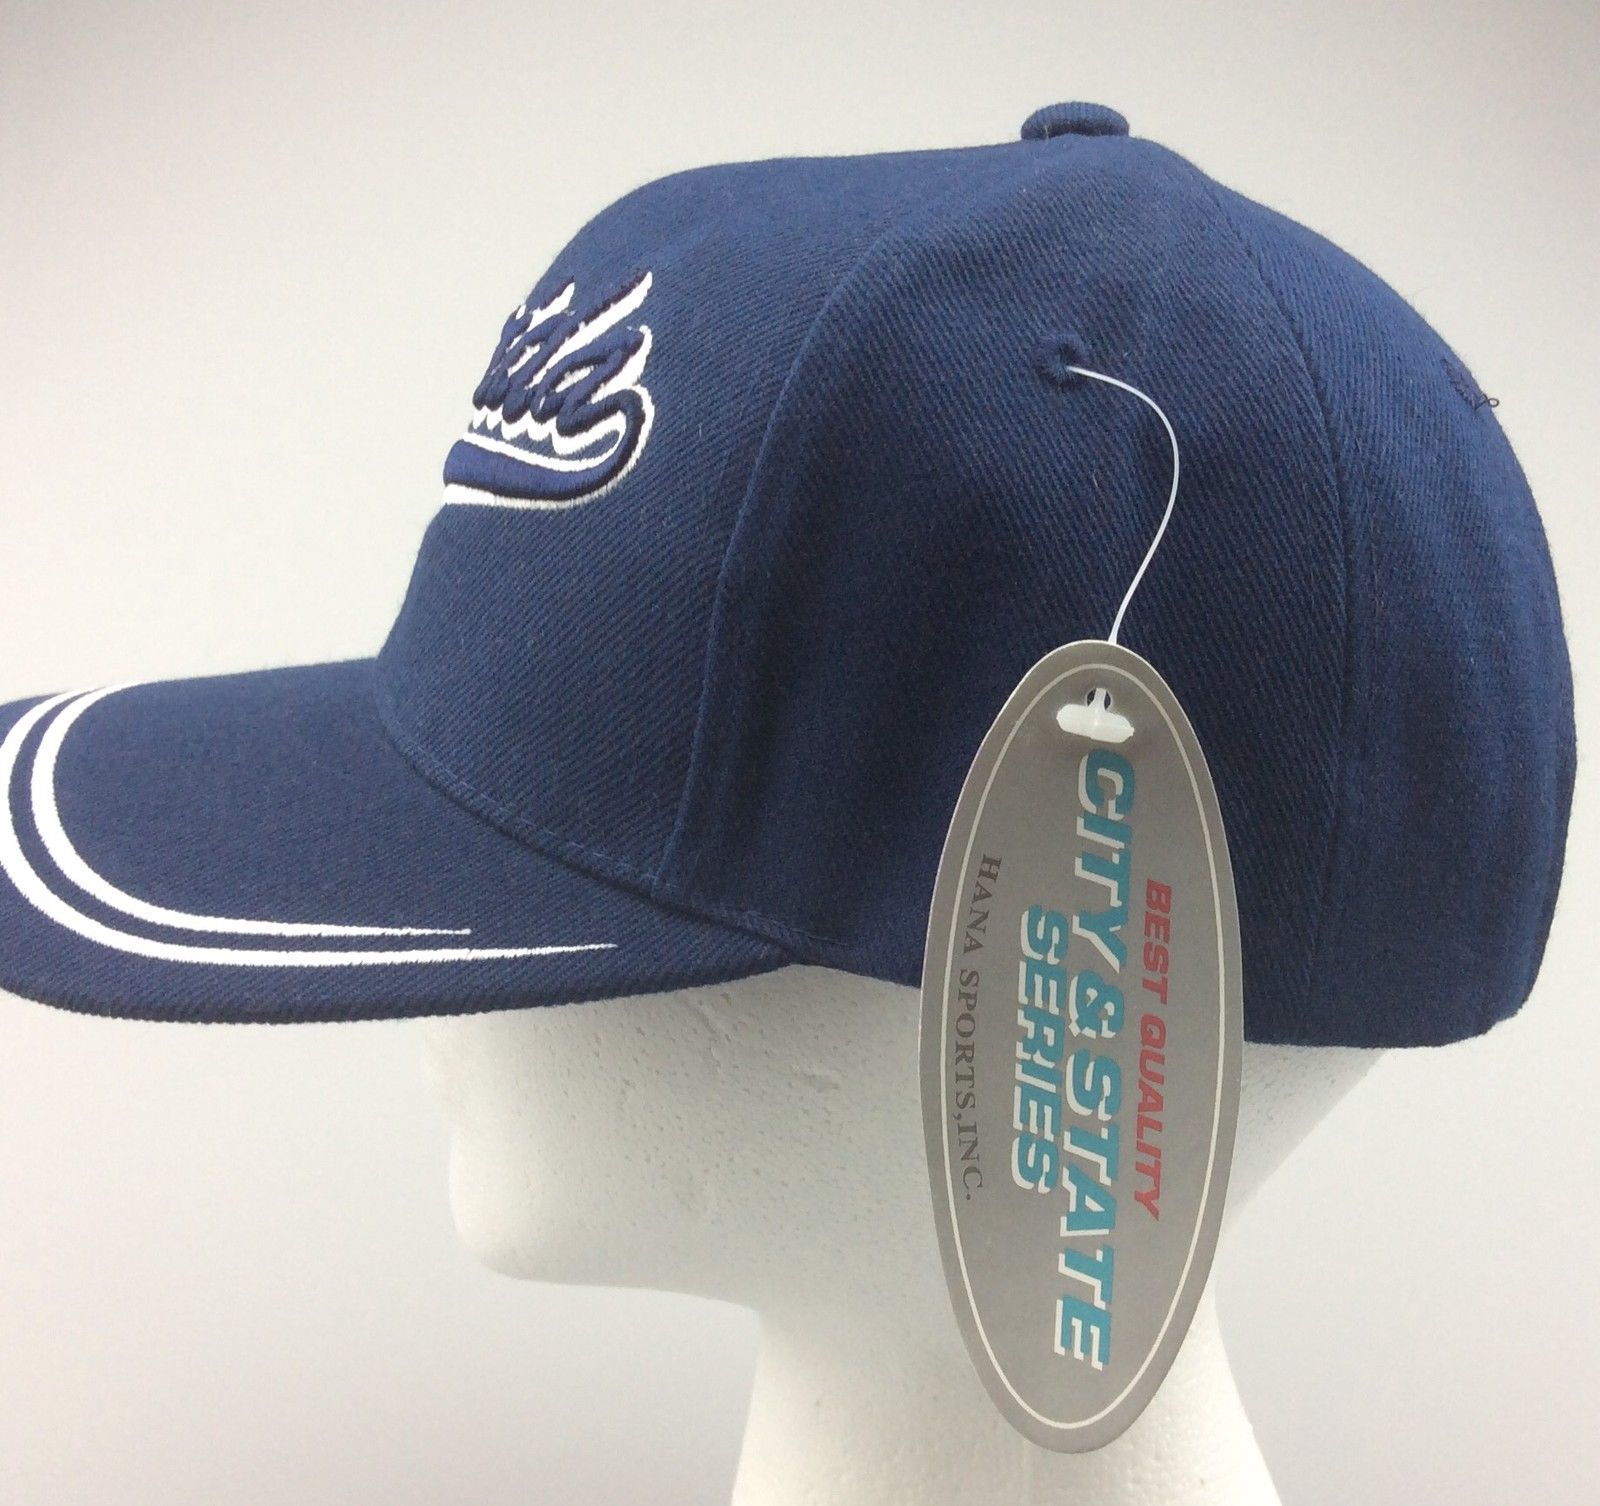 new baseball cap florida state curved black blue